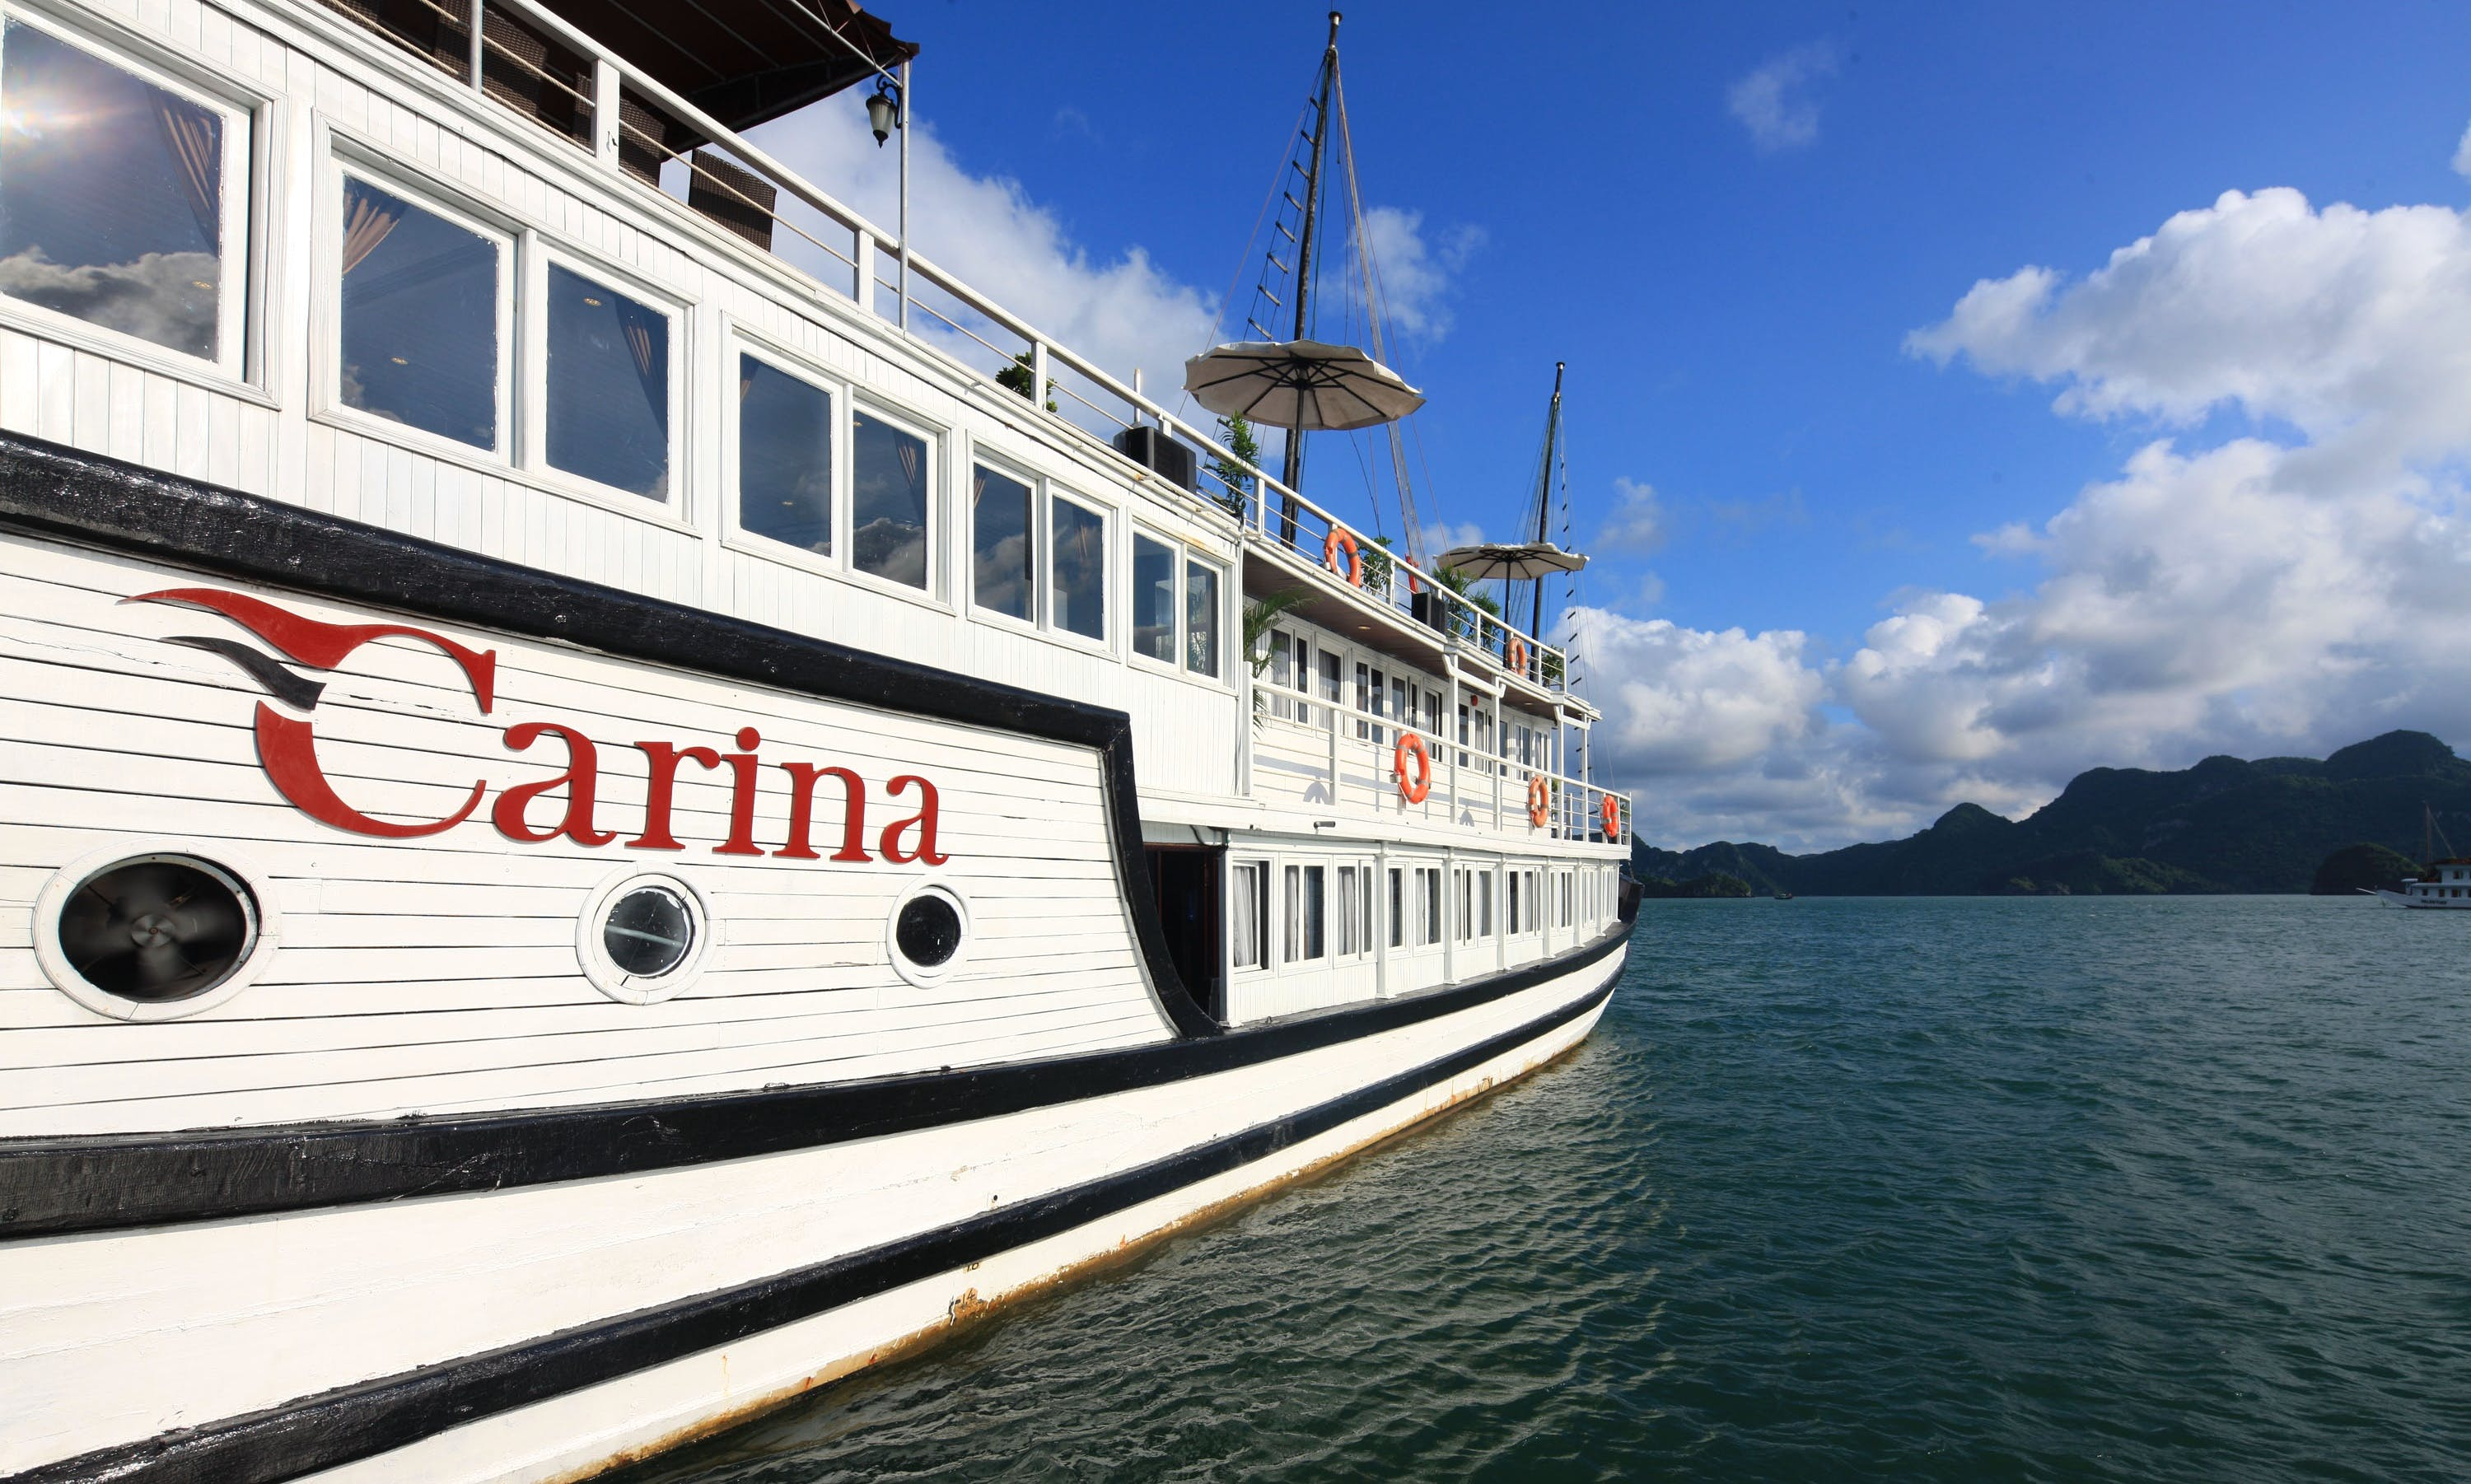 Aclass Carina cruise  - Smaller boat, better care in Halong bay